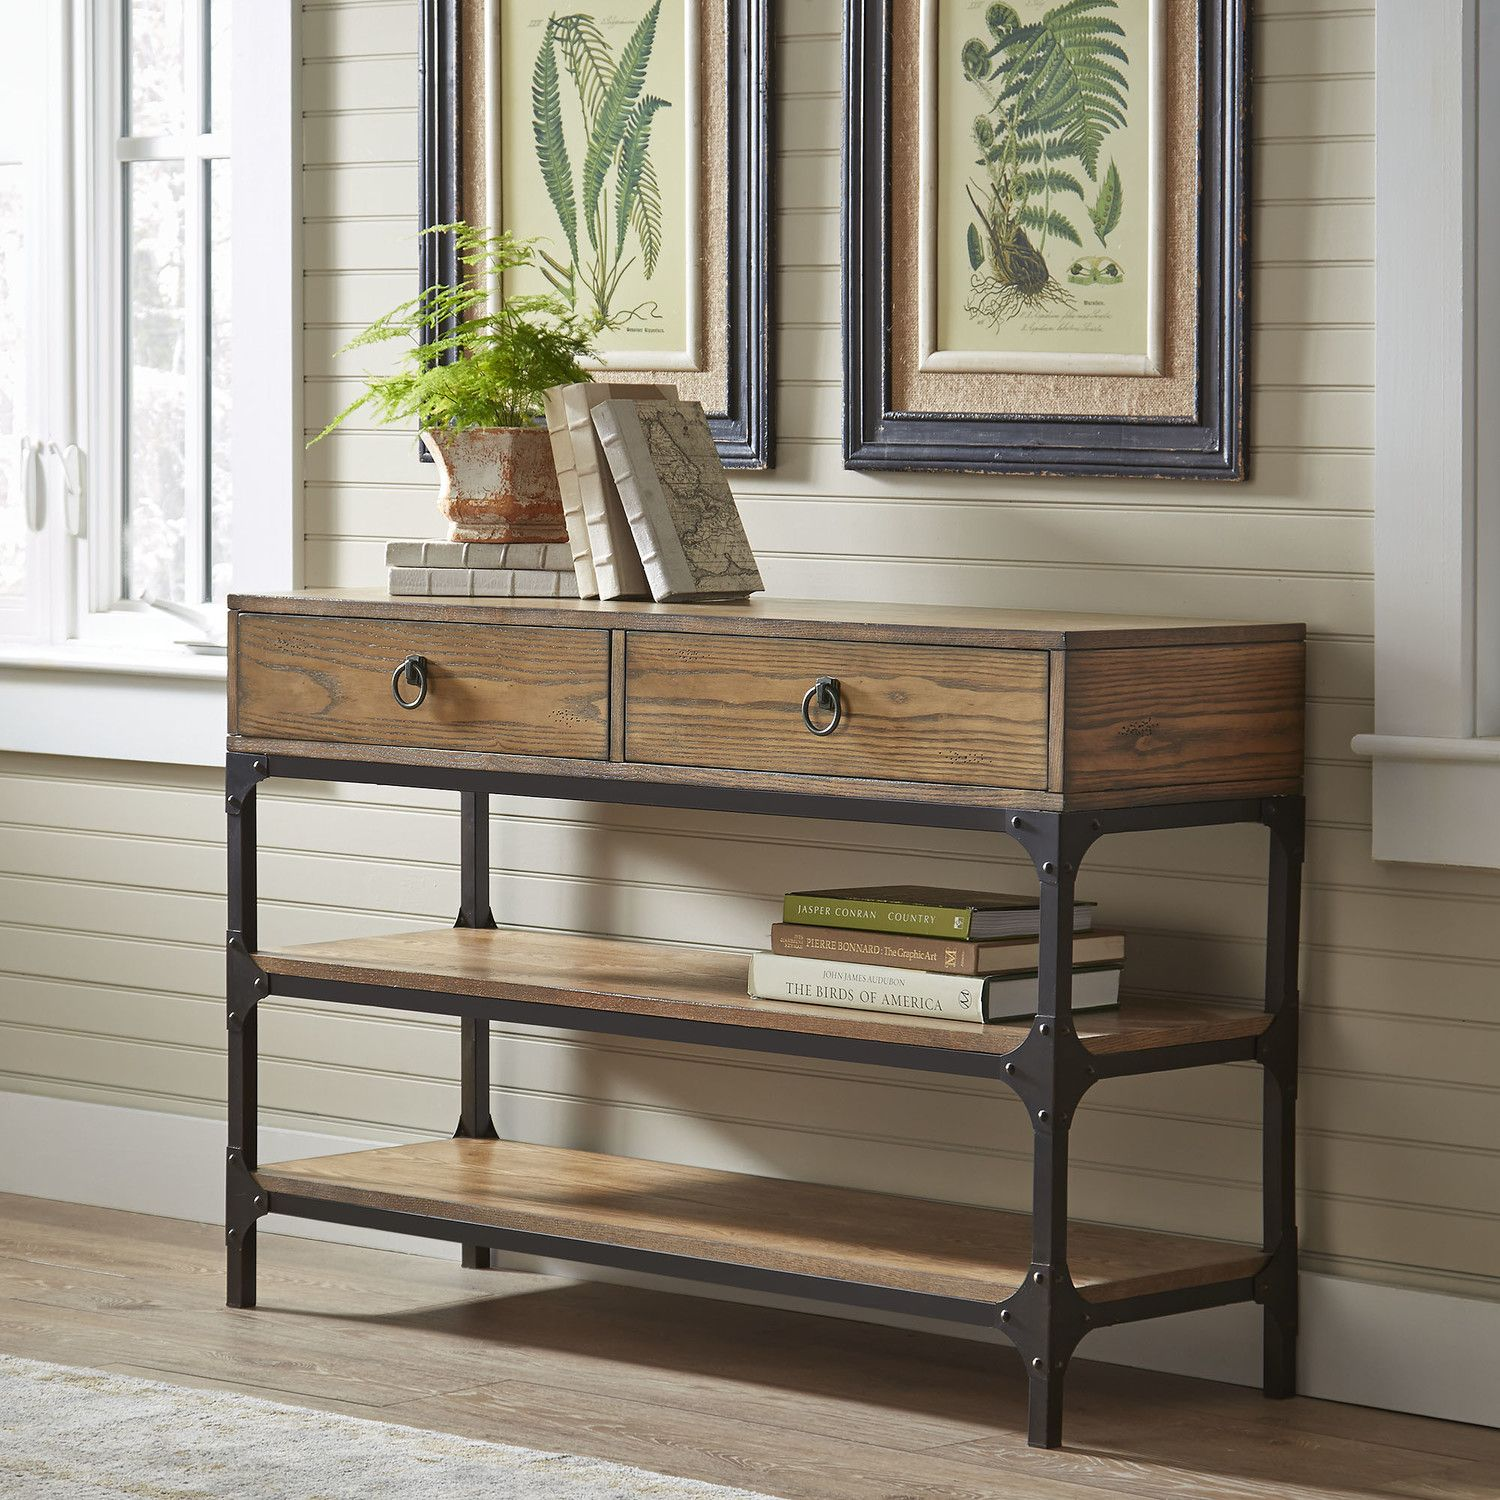 tanner console table made with ash veneers and a rustic metal frame this console